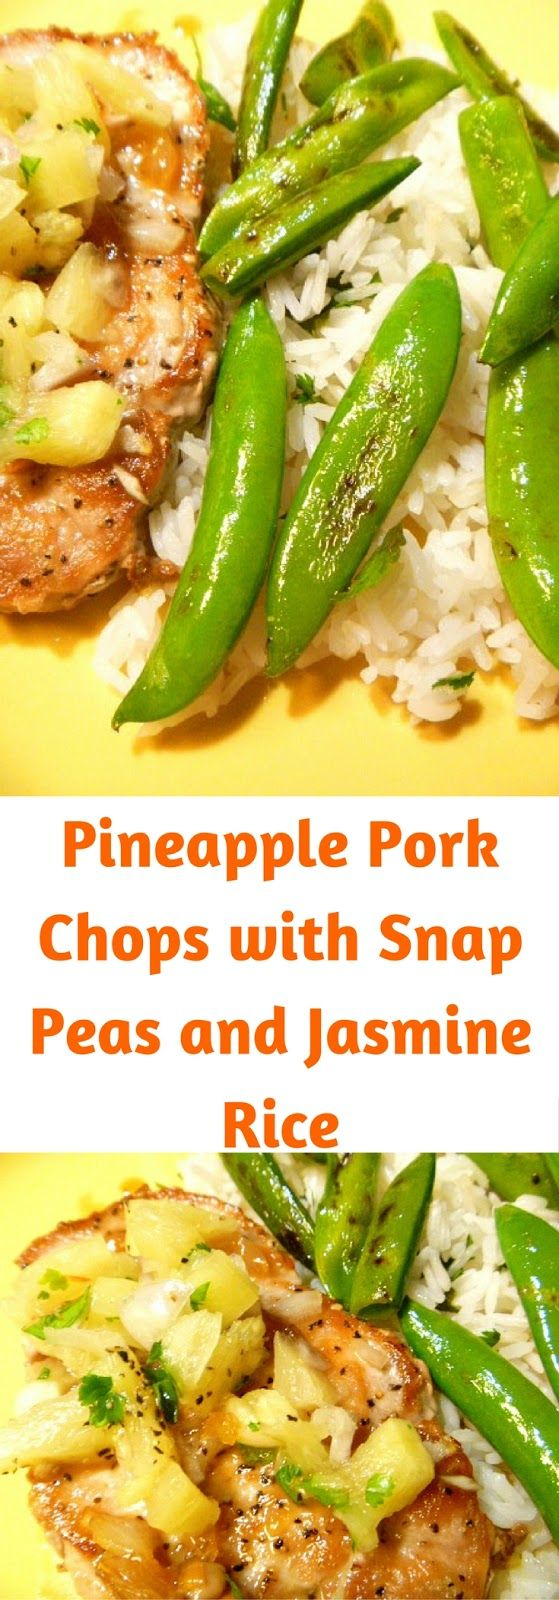 A light and tropical flavored dish of Pineapple Pork Chops with Snap Peas and Jasmine Rice.  Perfect for a summer weeknight meal. - Slice of Southern